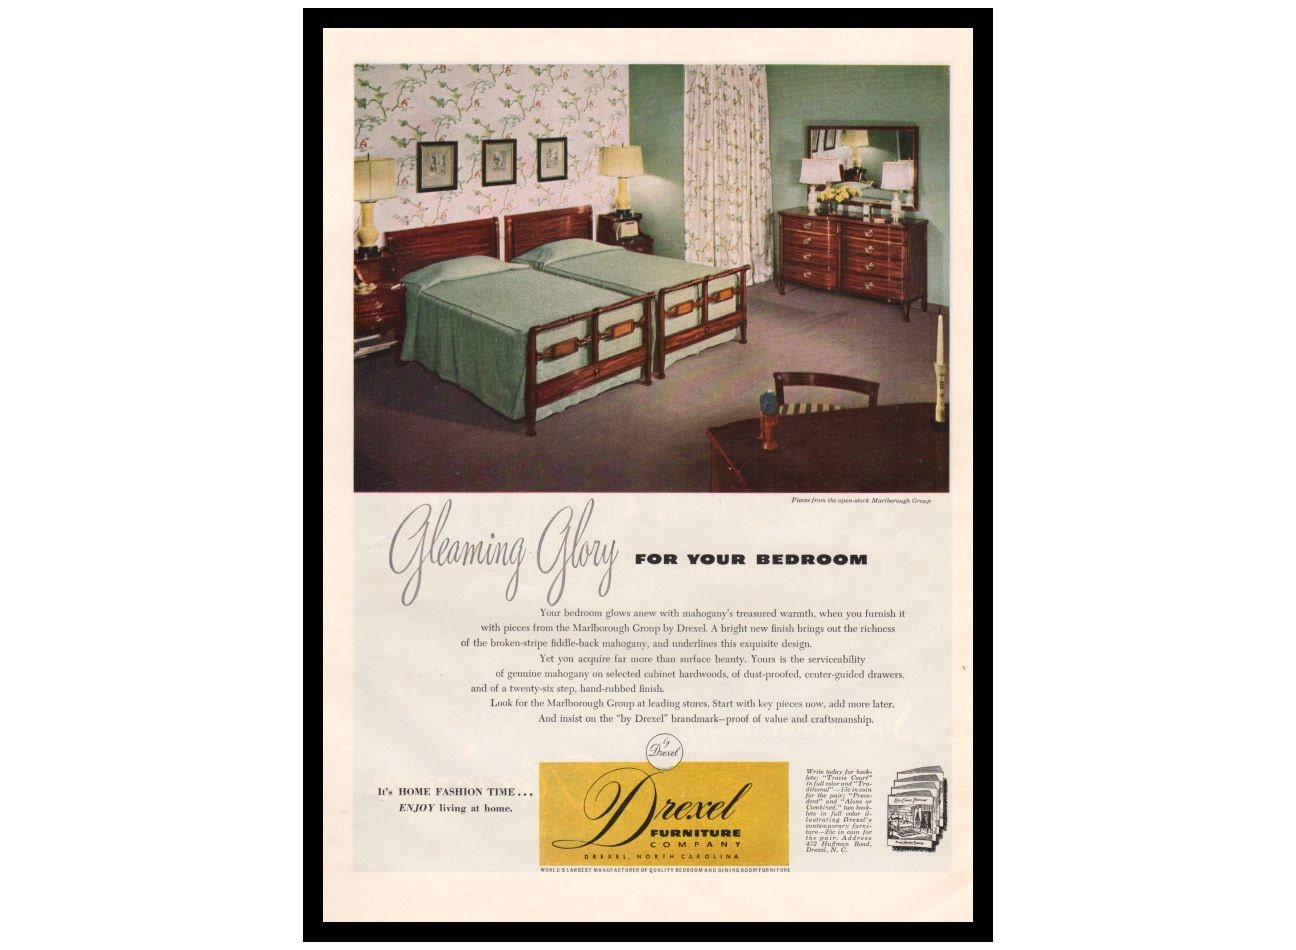 Vintage drexel furniture ad 1940s magazine by aplugfromthepast for P s furniture flyer